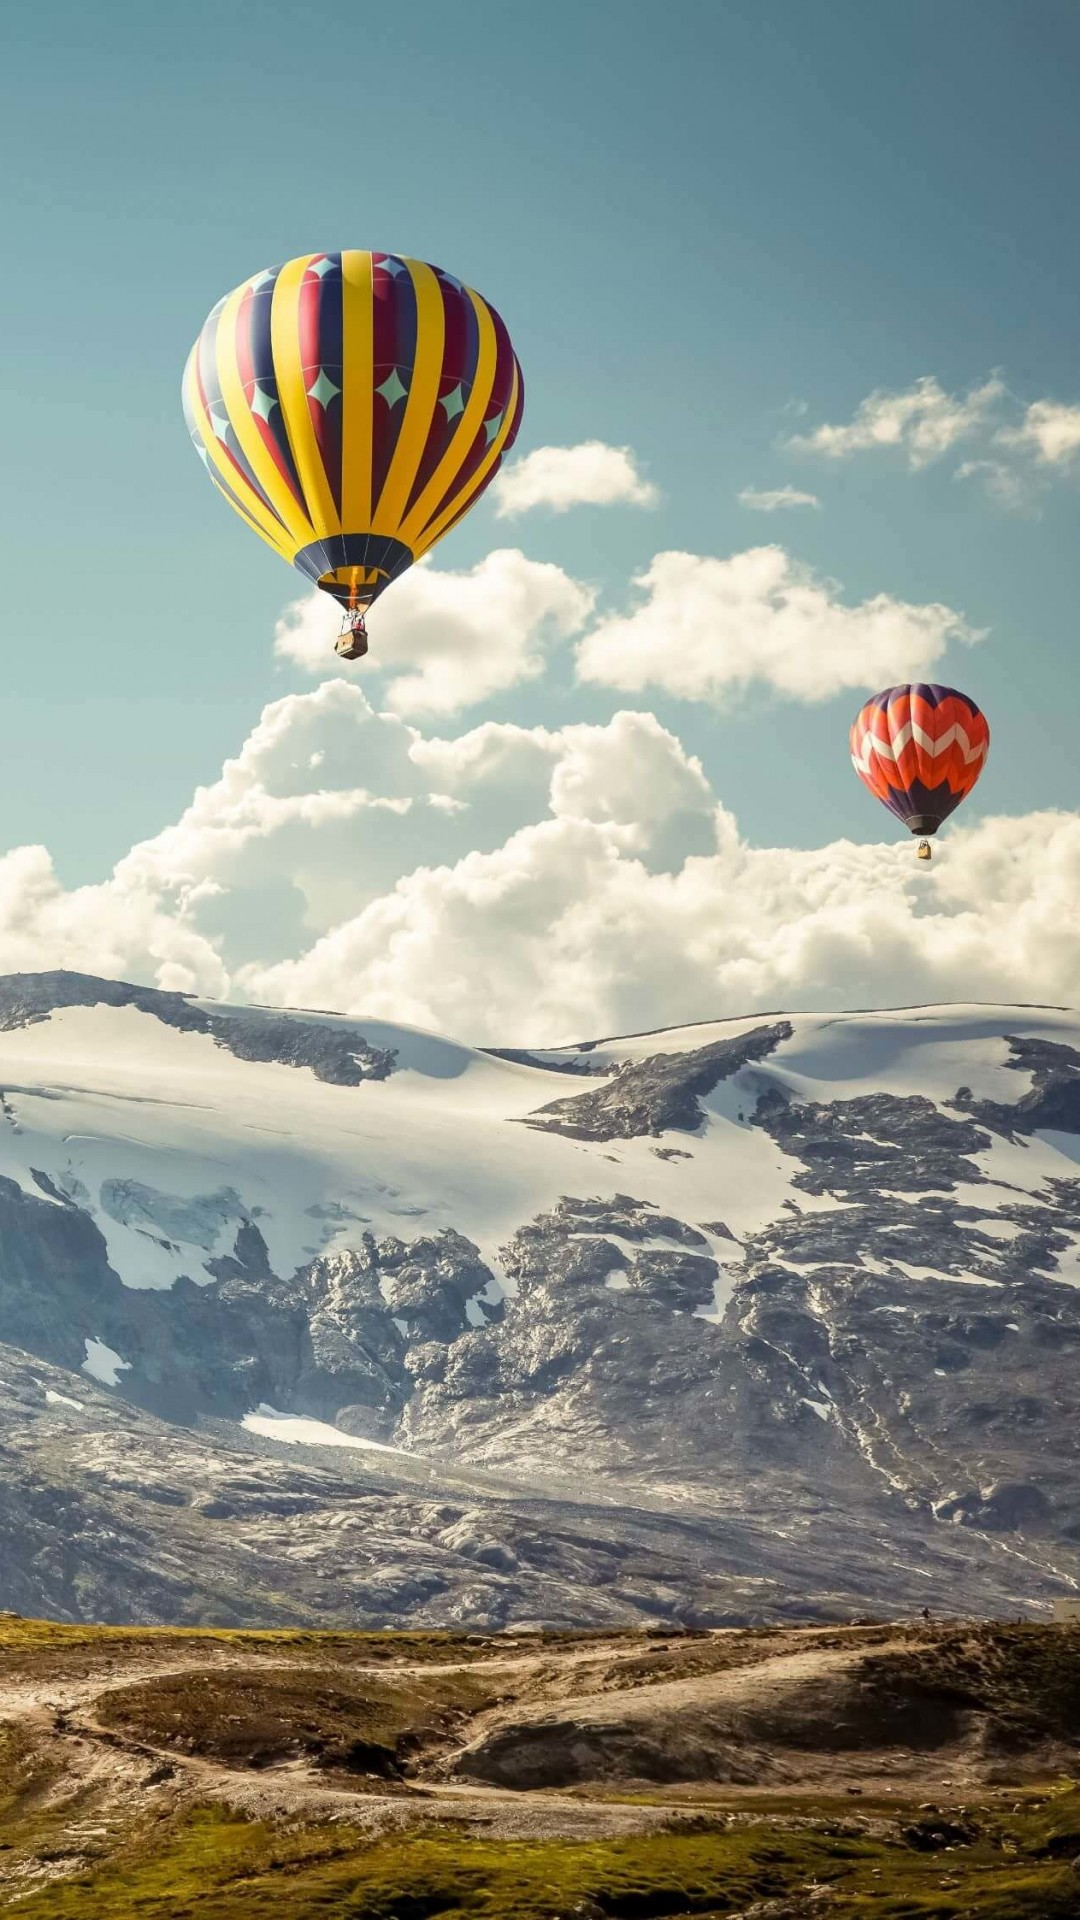 Hot Air Balloon Over the Mountain Wallpaper for SAMSUNG Galaxy S4